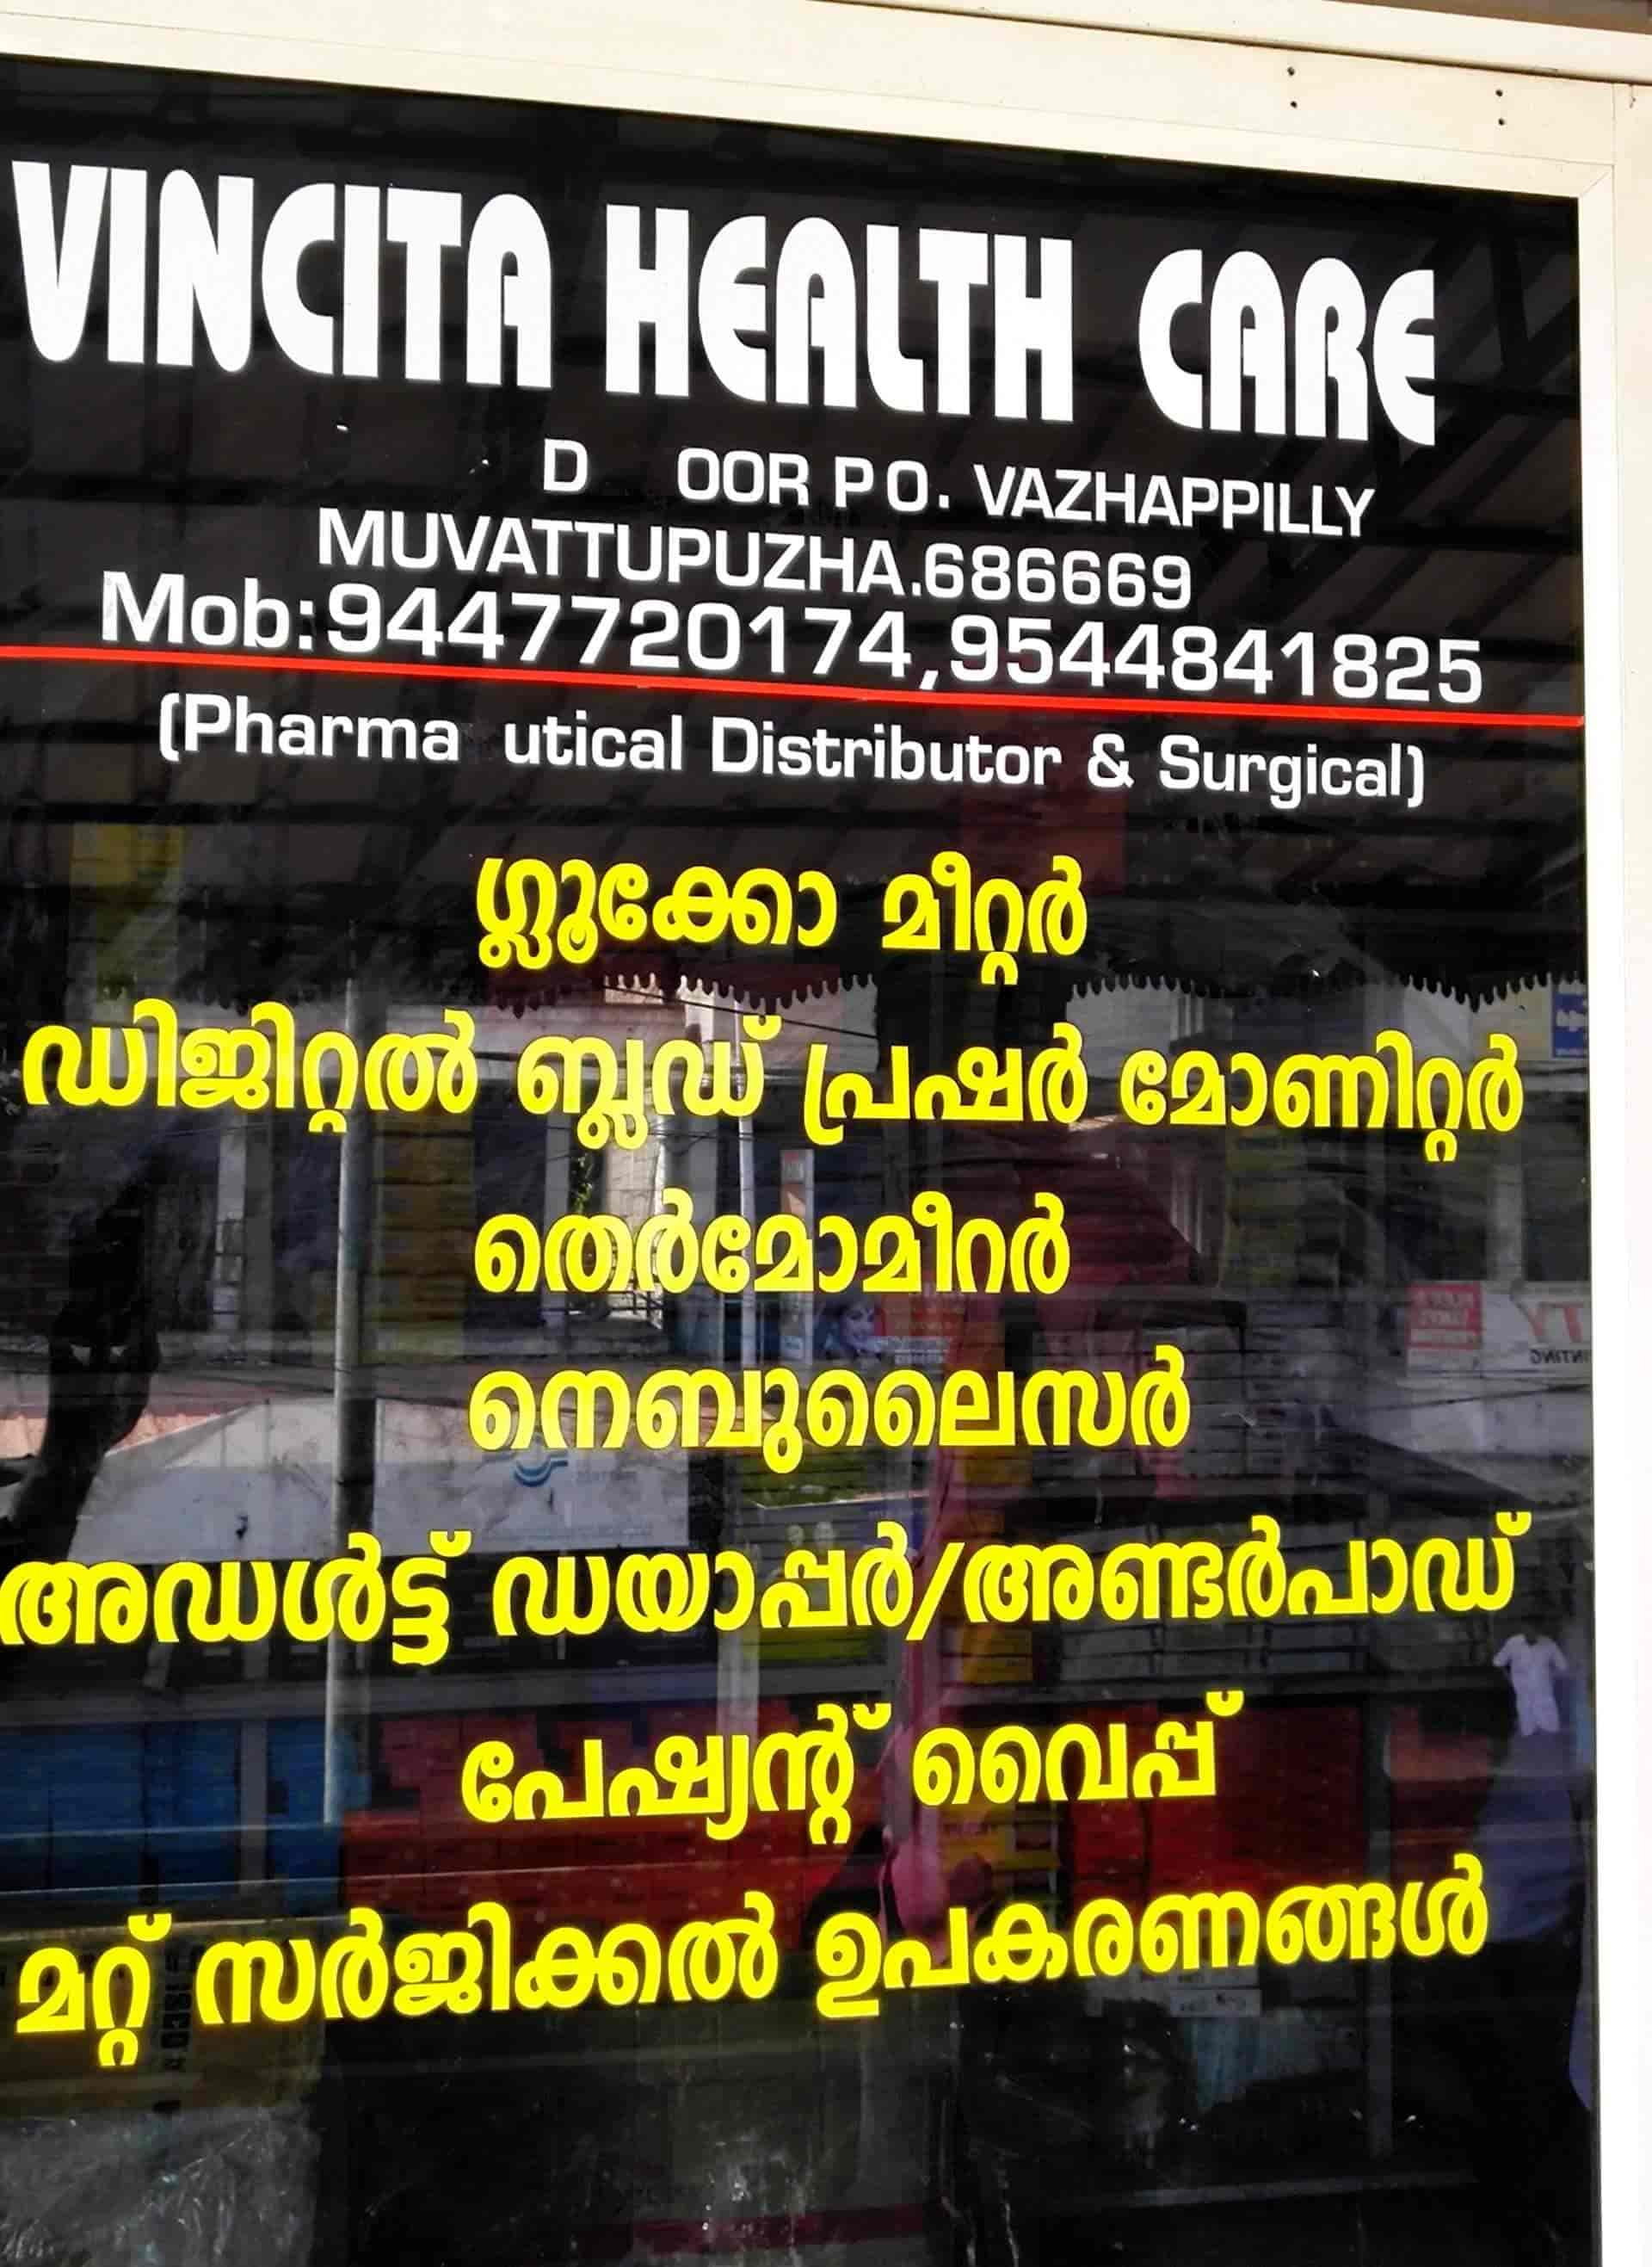 Vincita Health Care, Muvattupuzha Market - Folding Wheel